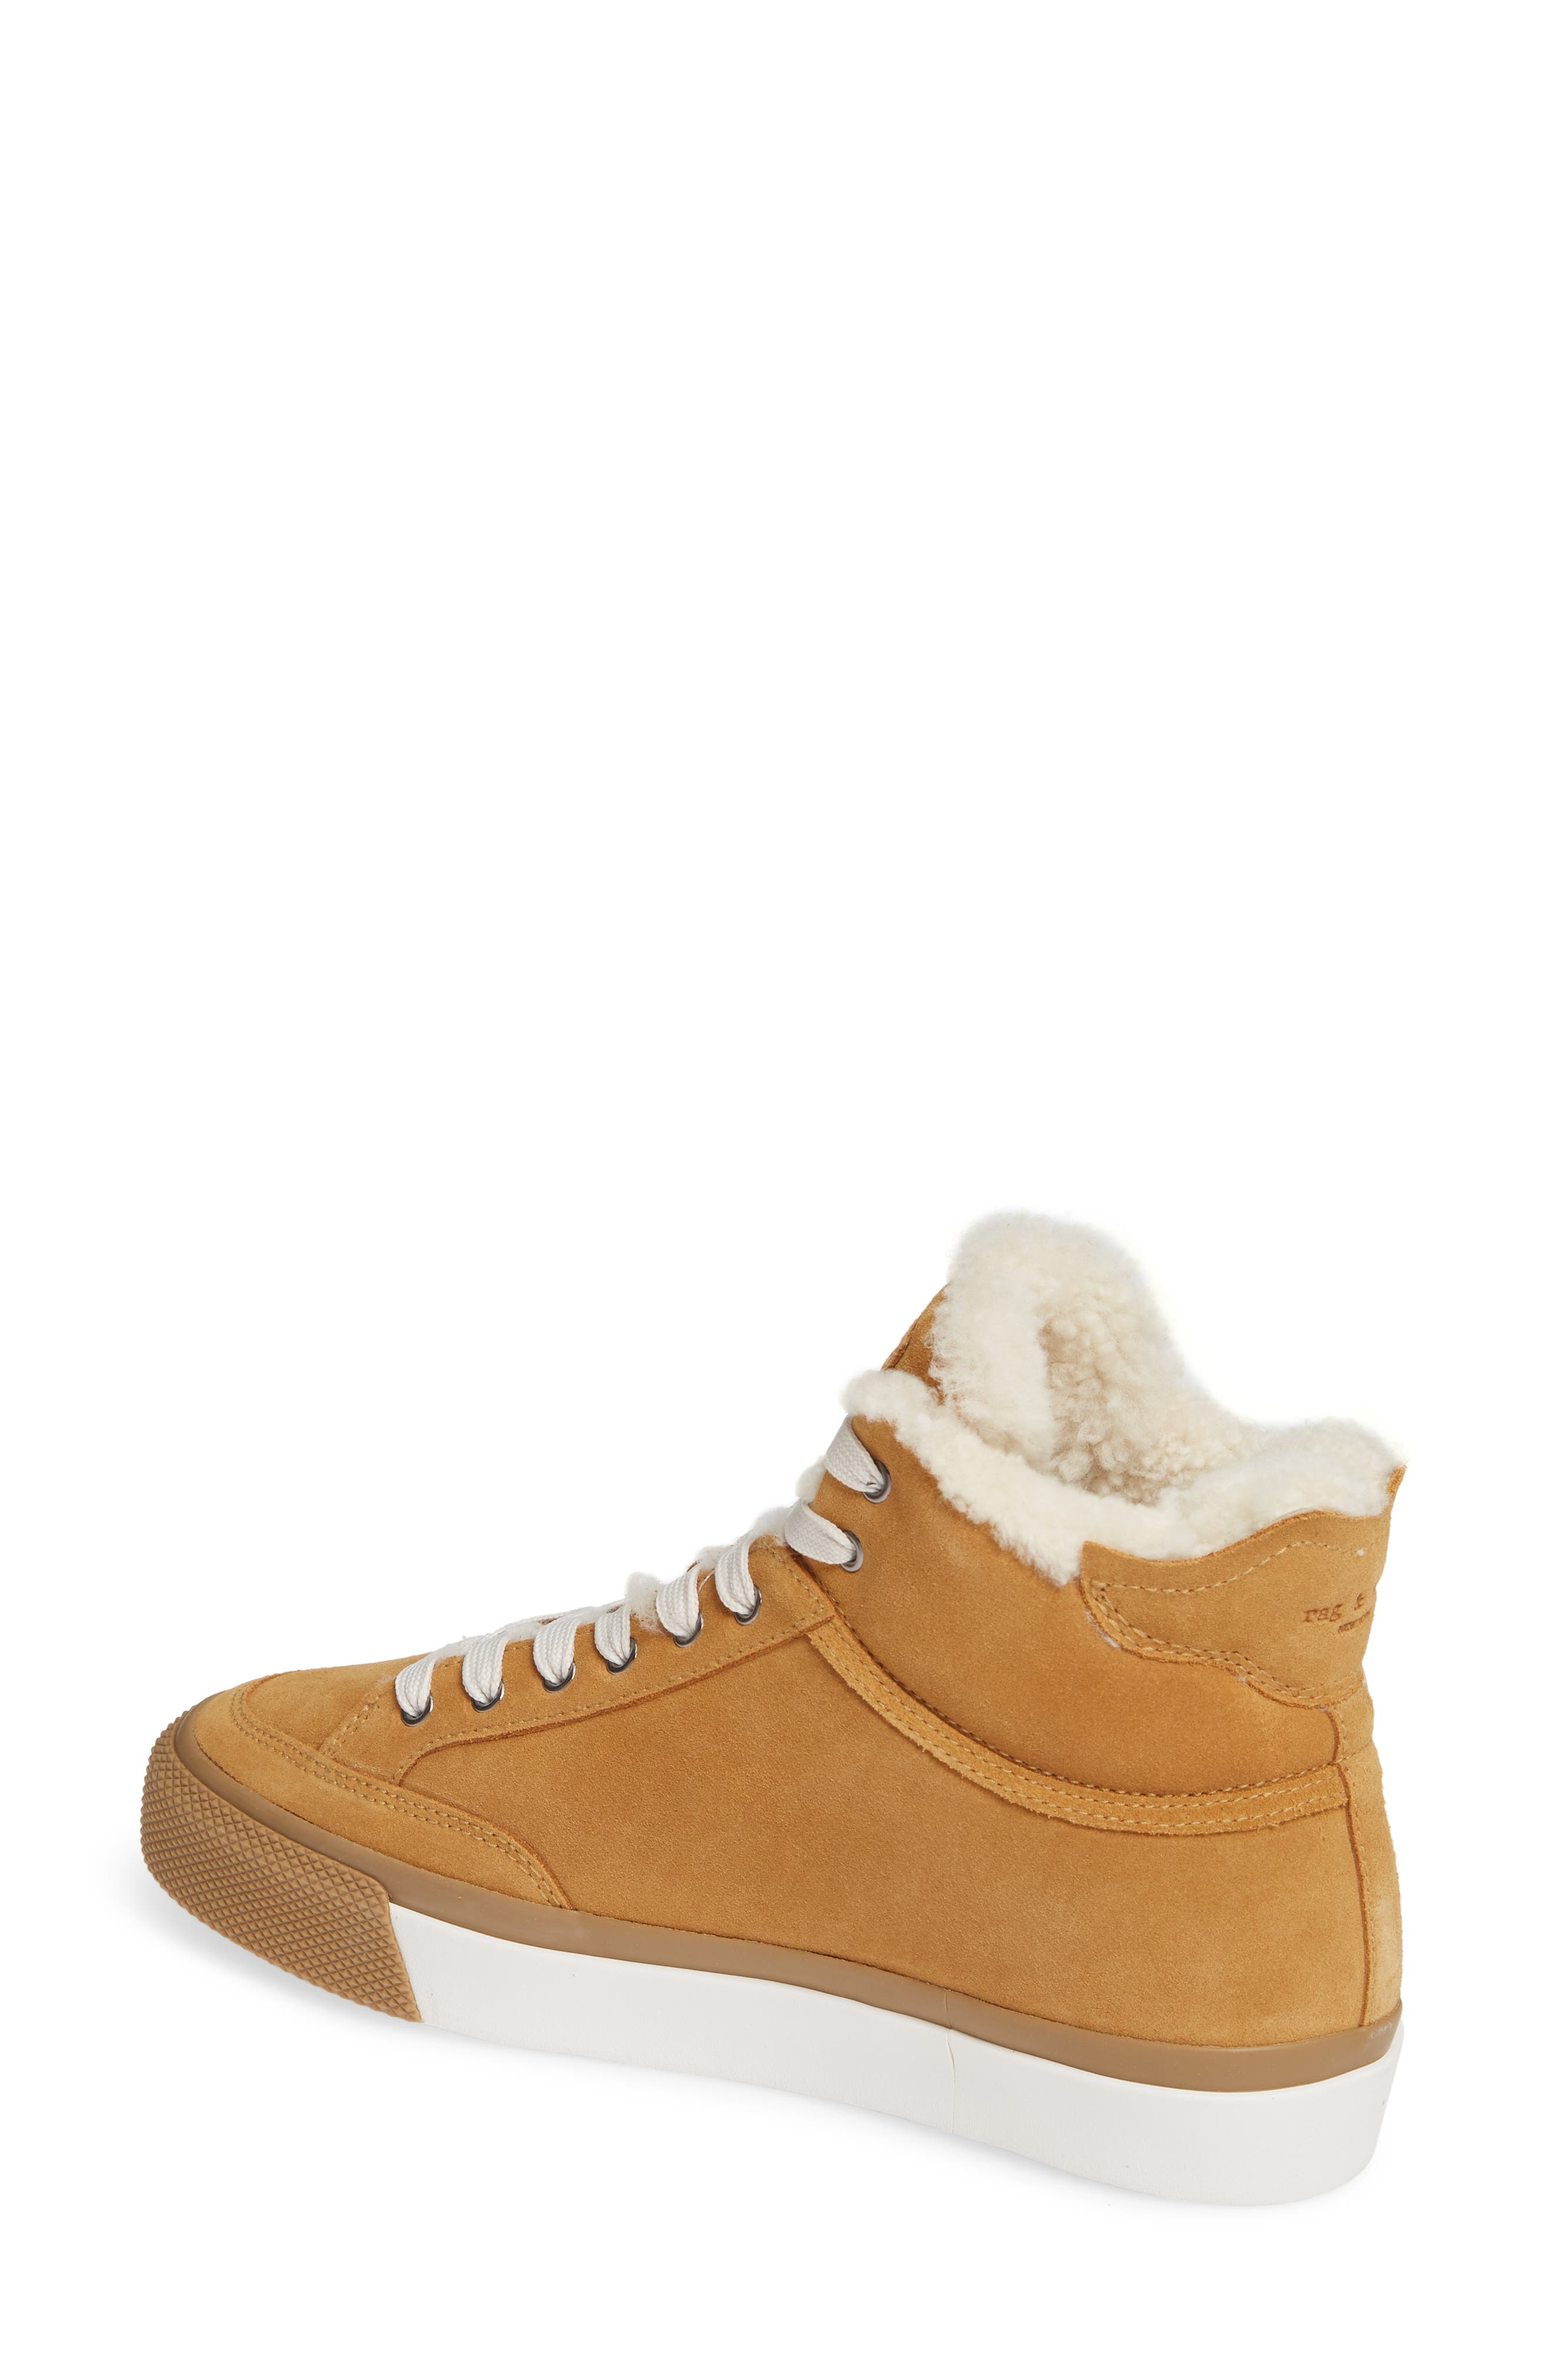 Army High Top Sneaker,                             Alternate thumbnail 2, color,                             OAK SUEDE